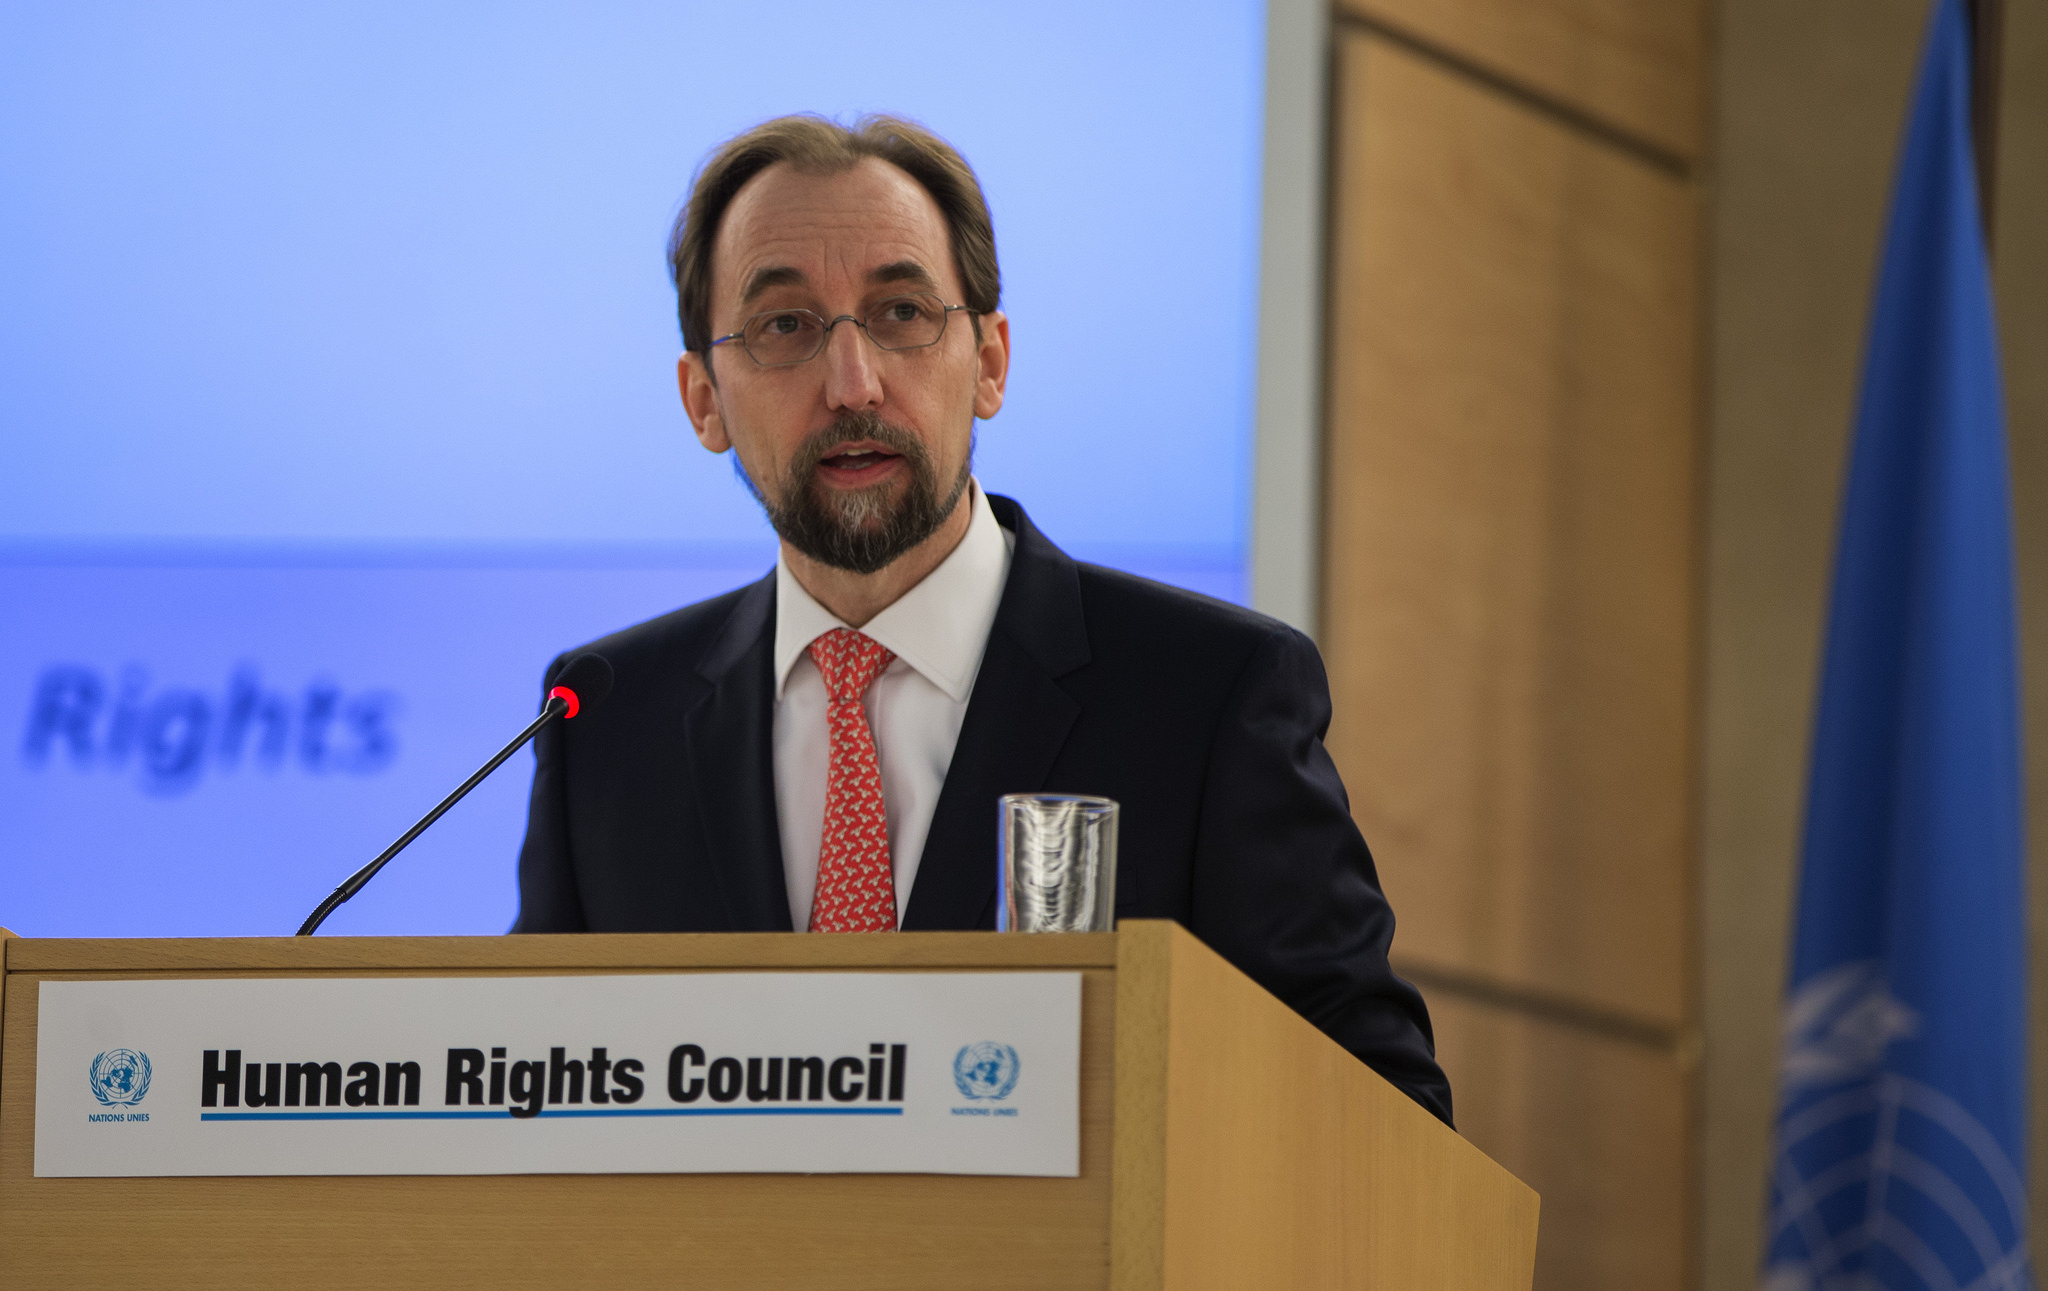 Zeid Ra'ad Al Hussein, UN High Commissioner for Human Rights visited Peru this week.